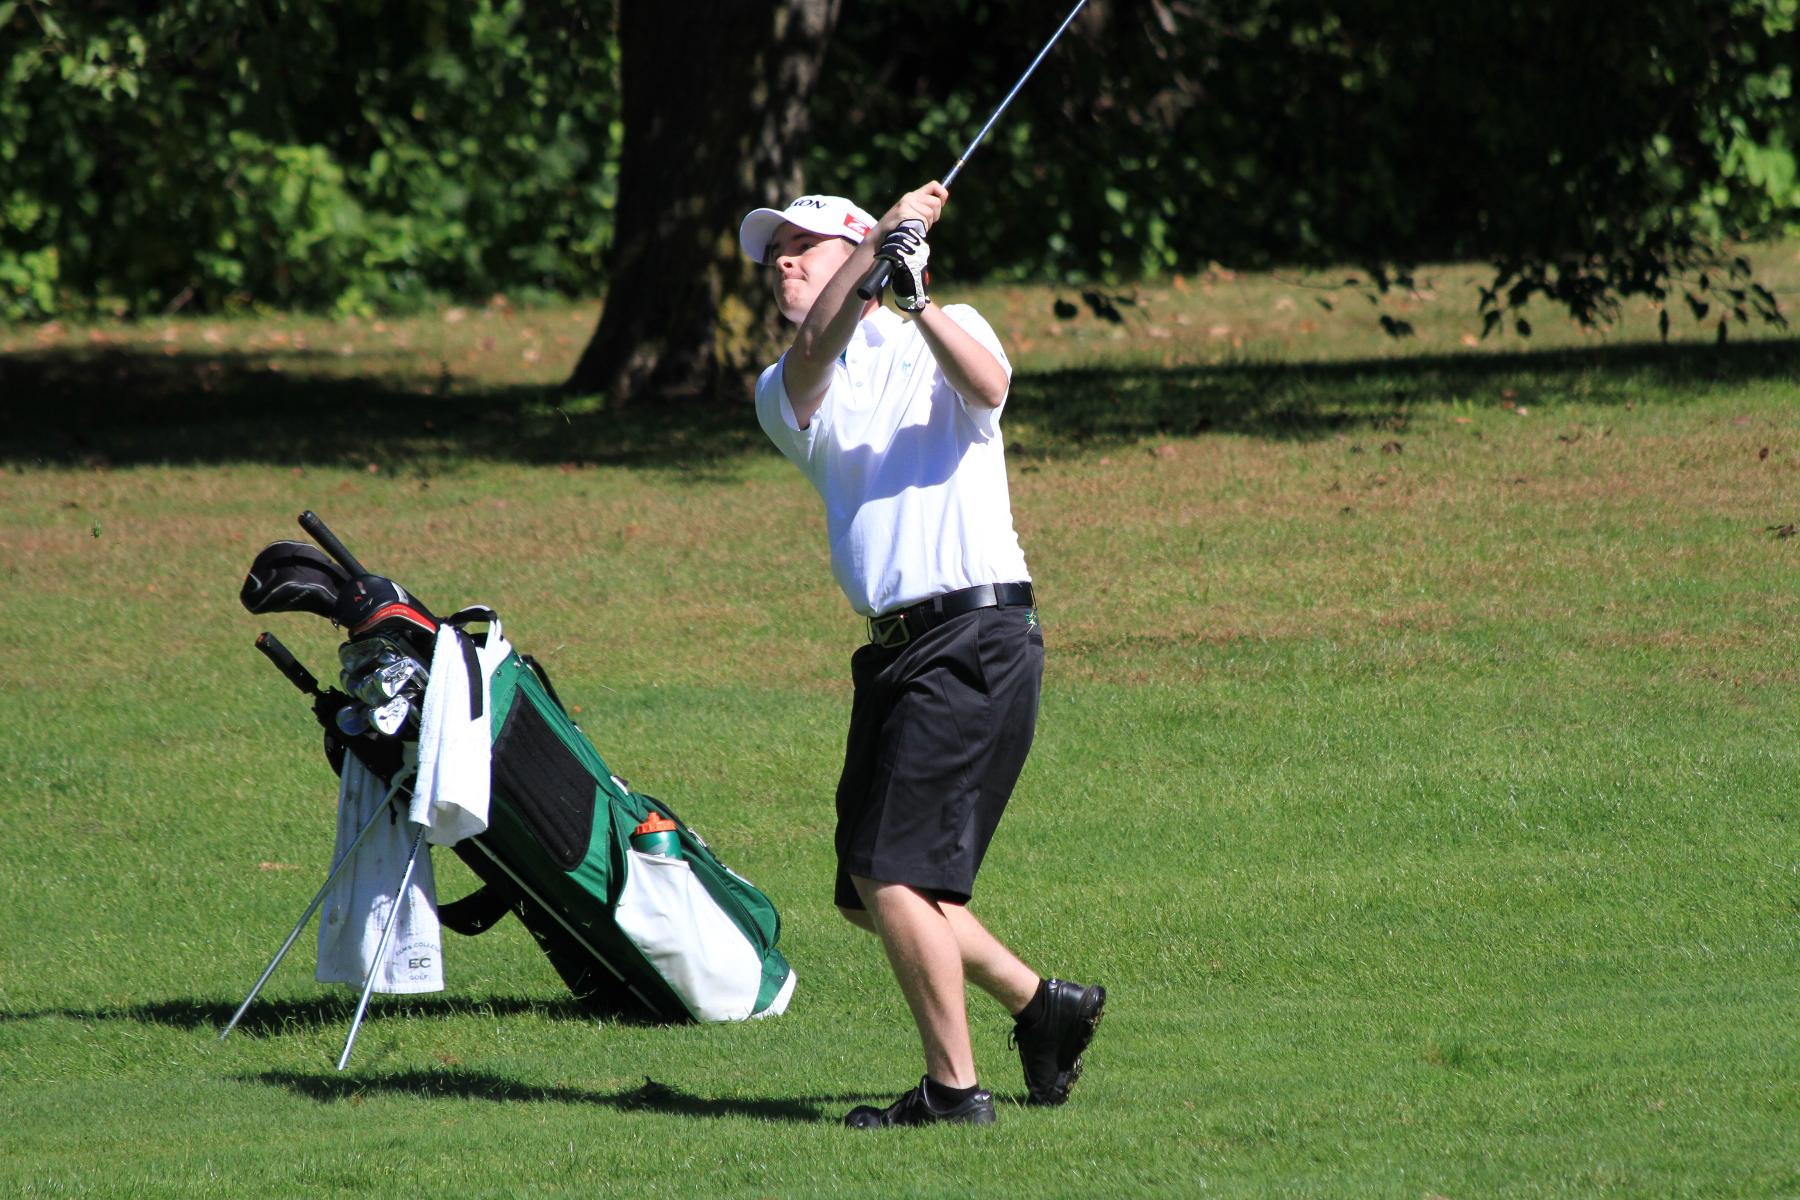 Blazers Tied For 15th After Day One Of Hampton Inn Collegiate Invite